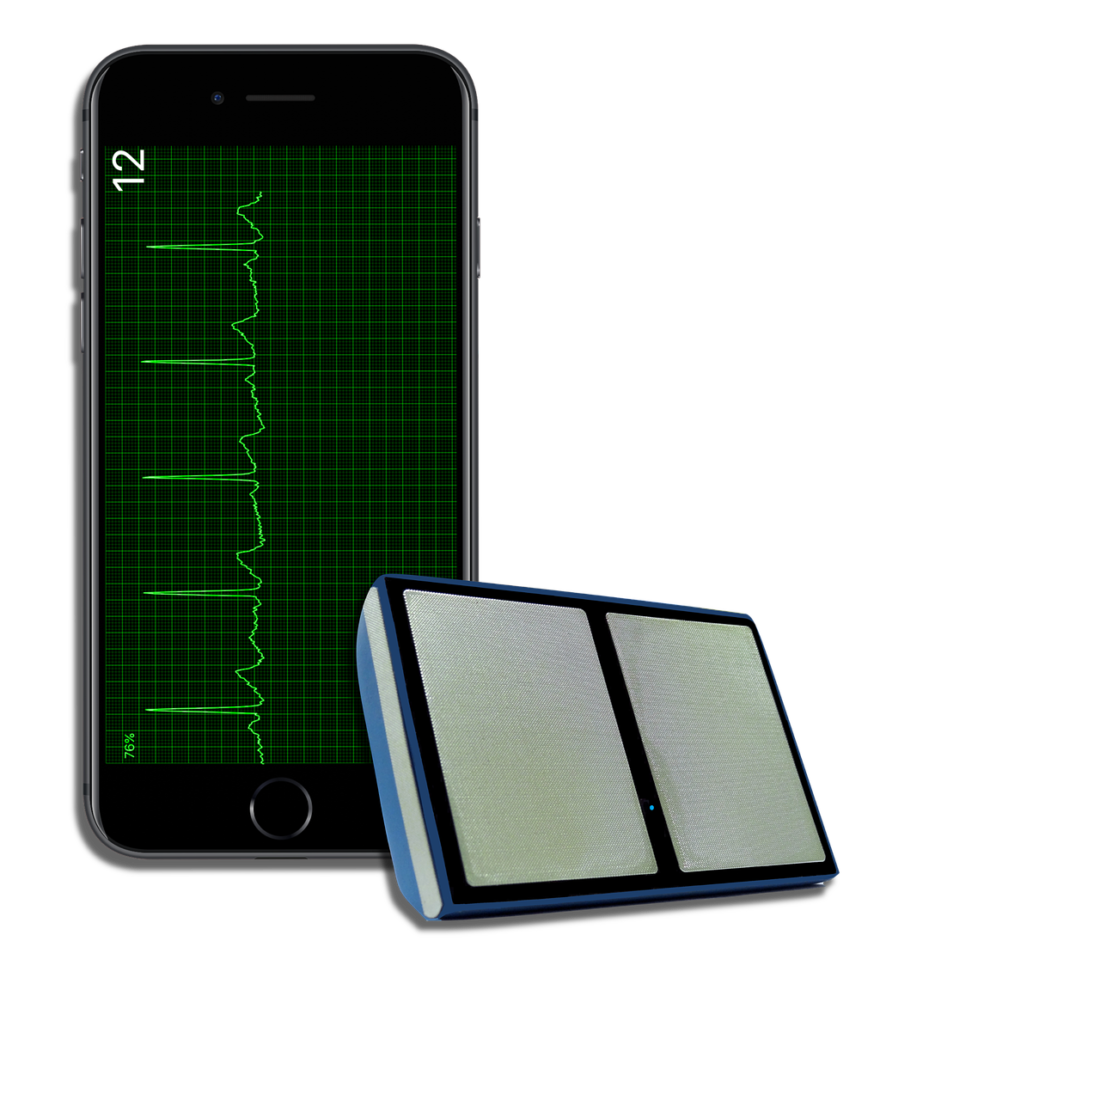 The Challenges Facing Medical Apps are many